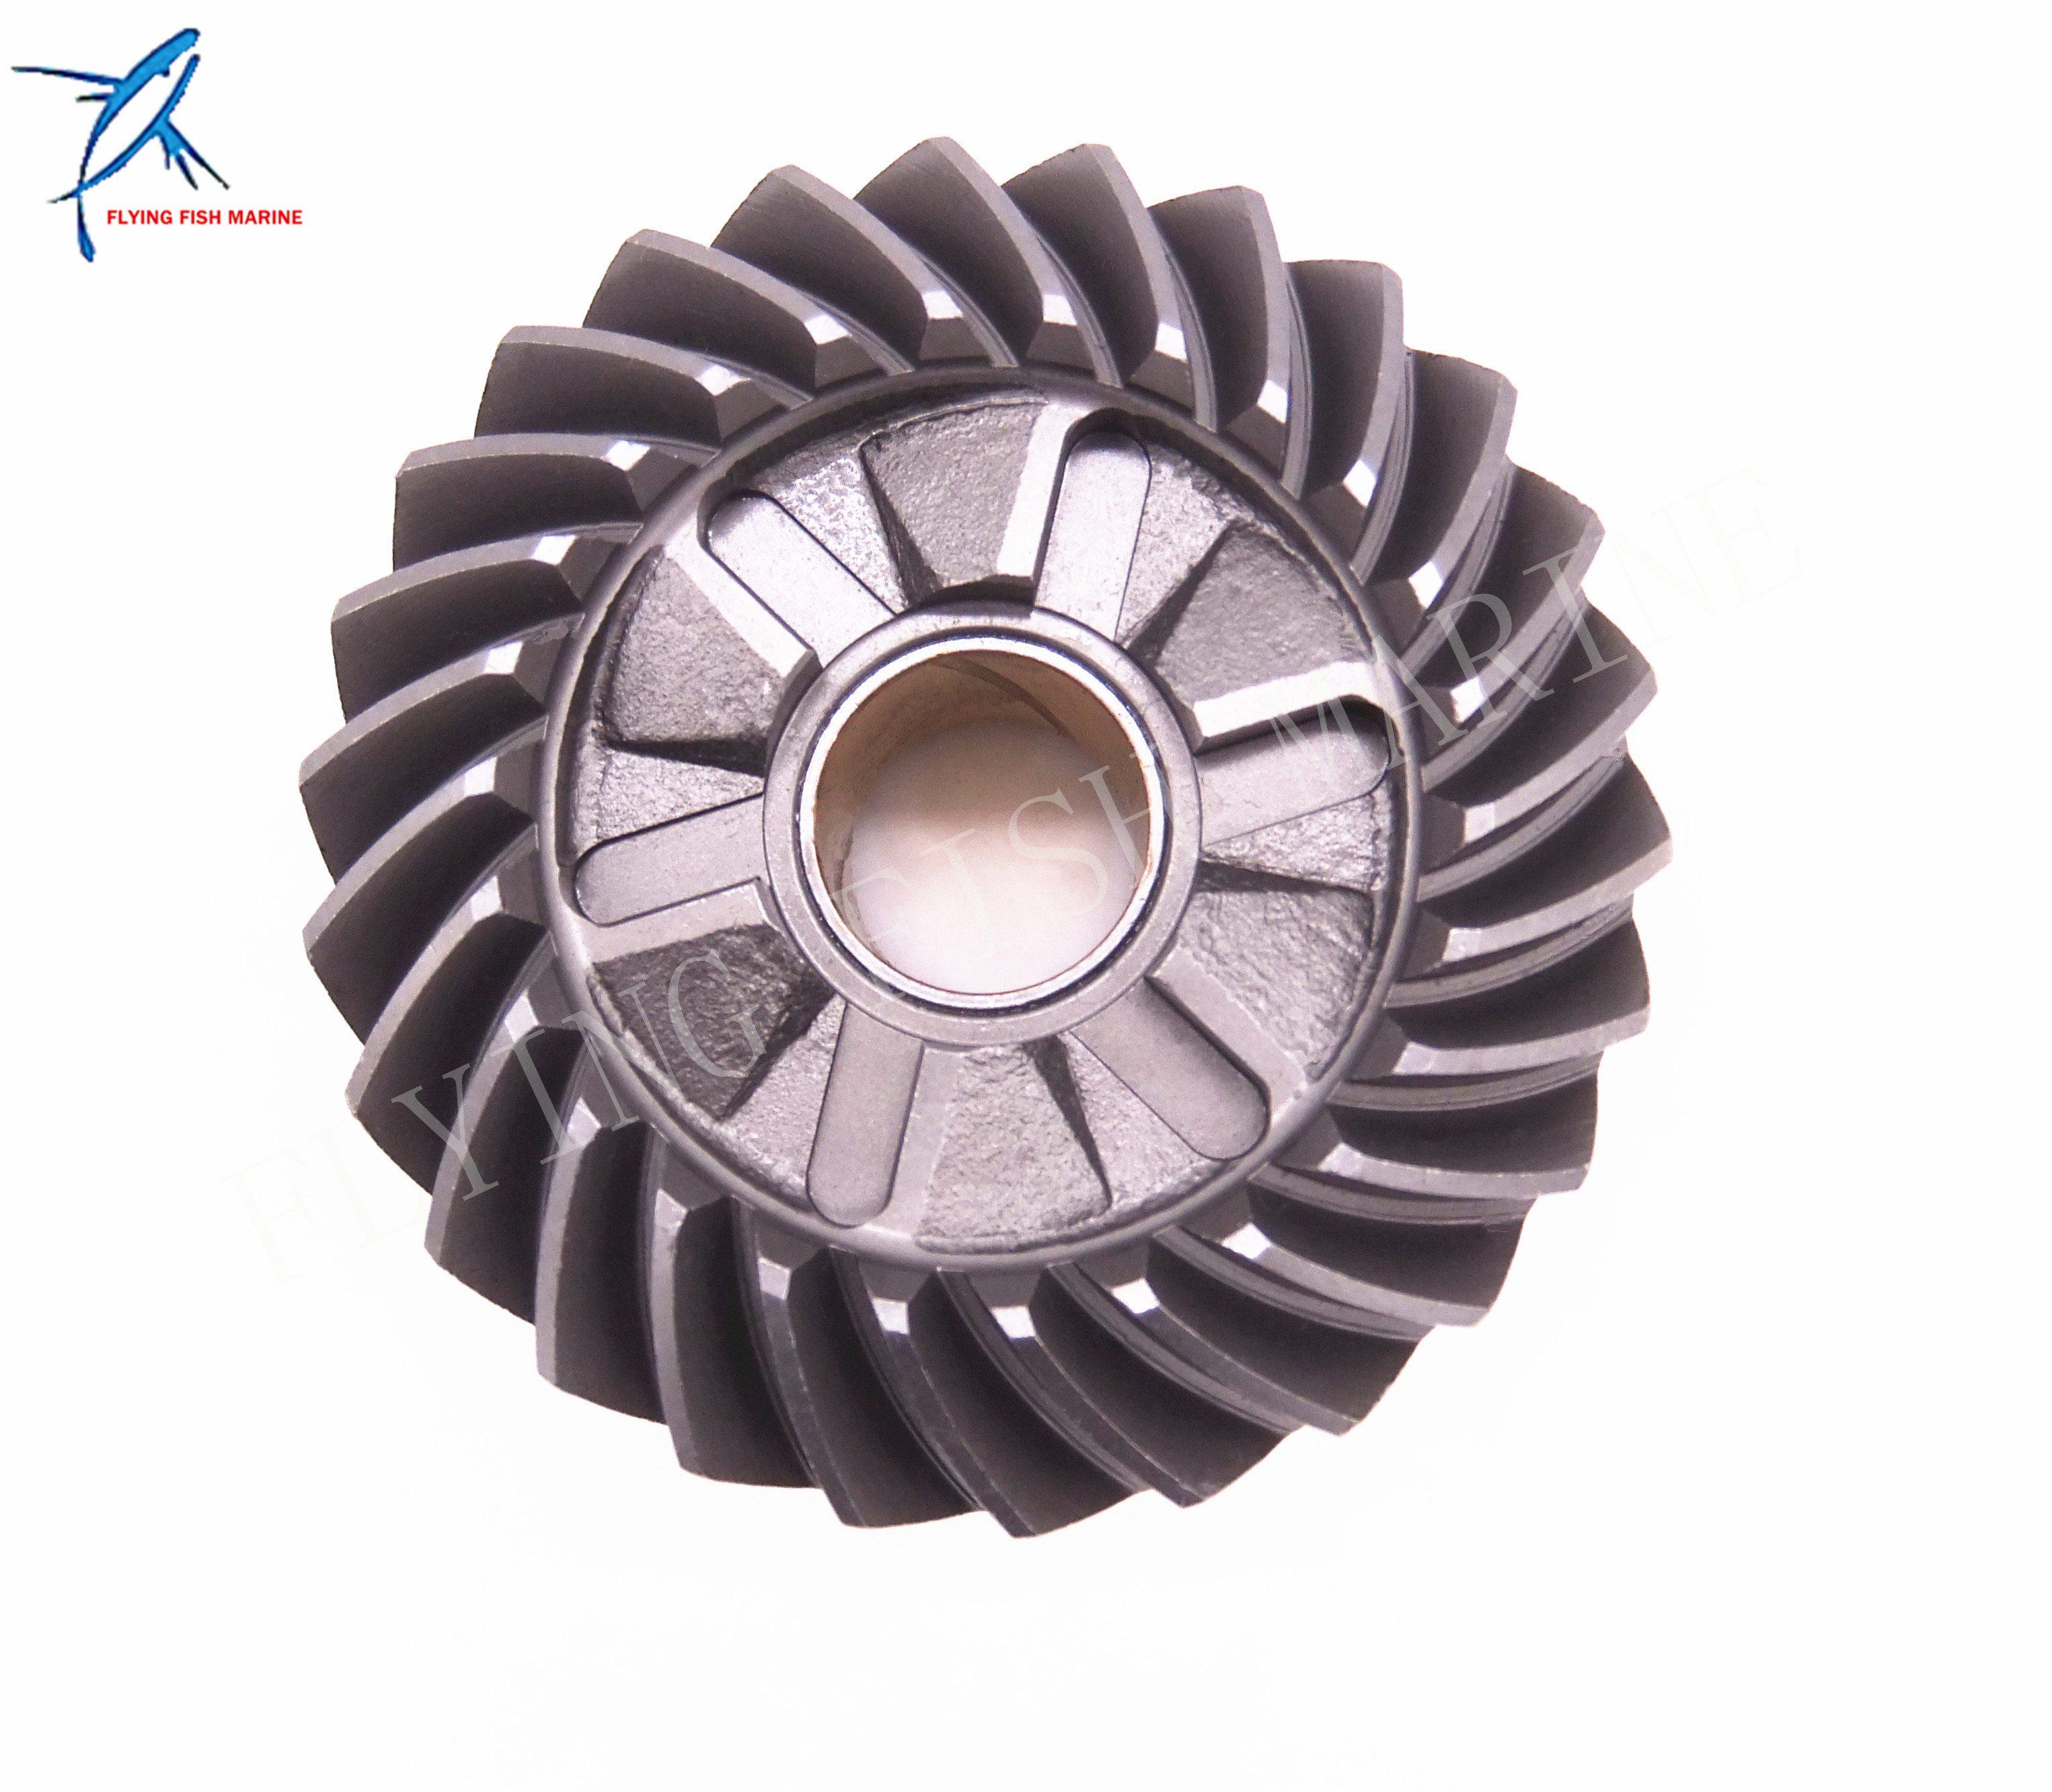 T85-04000100 Forward Gear for Parsun Outboard Engine 2-Stroke T75 T85 T90 Boat Motor rovertime rovertime rtm 85